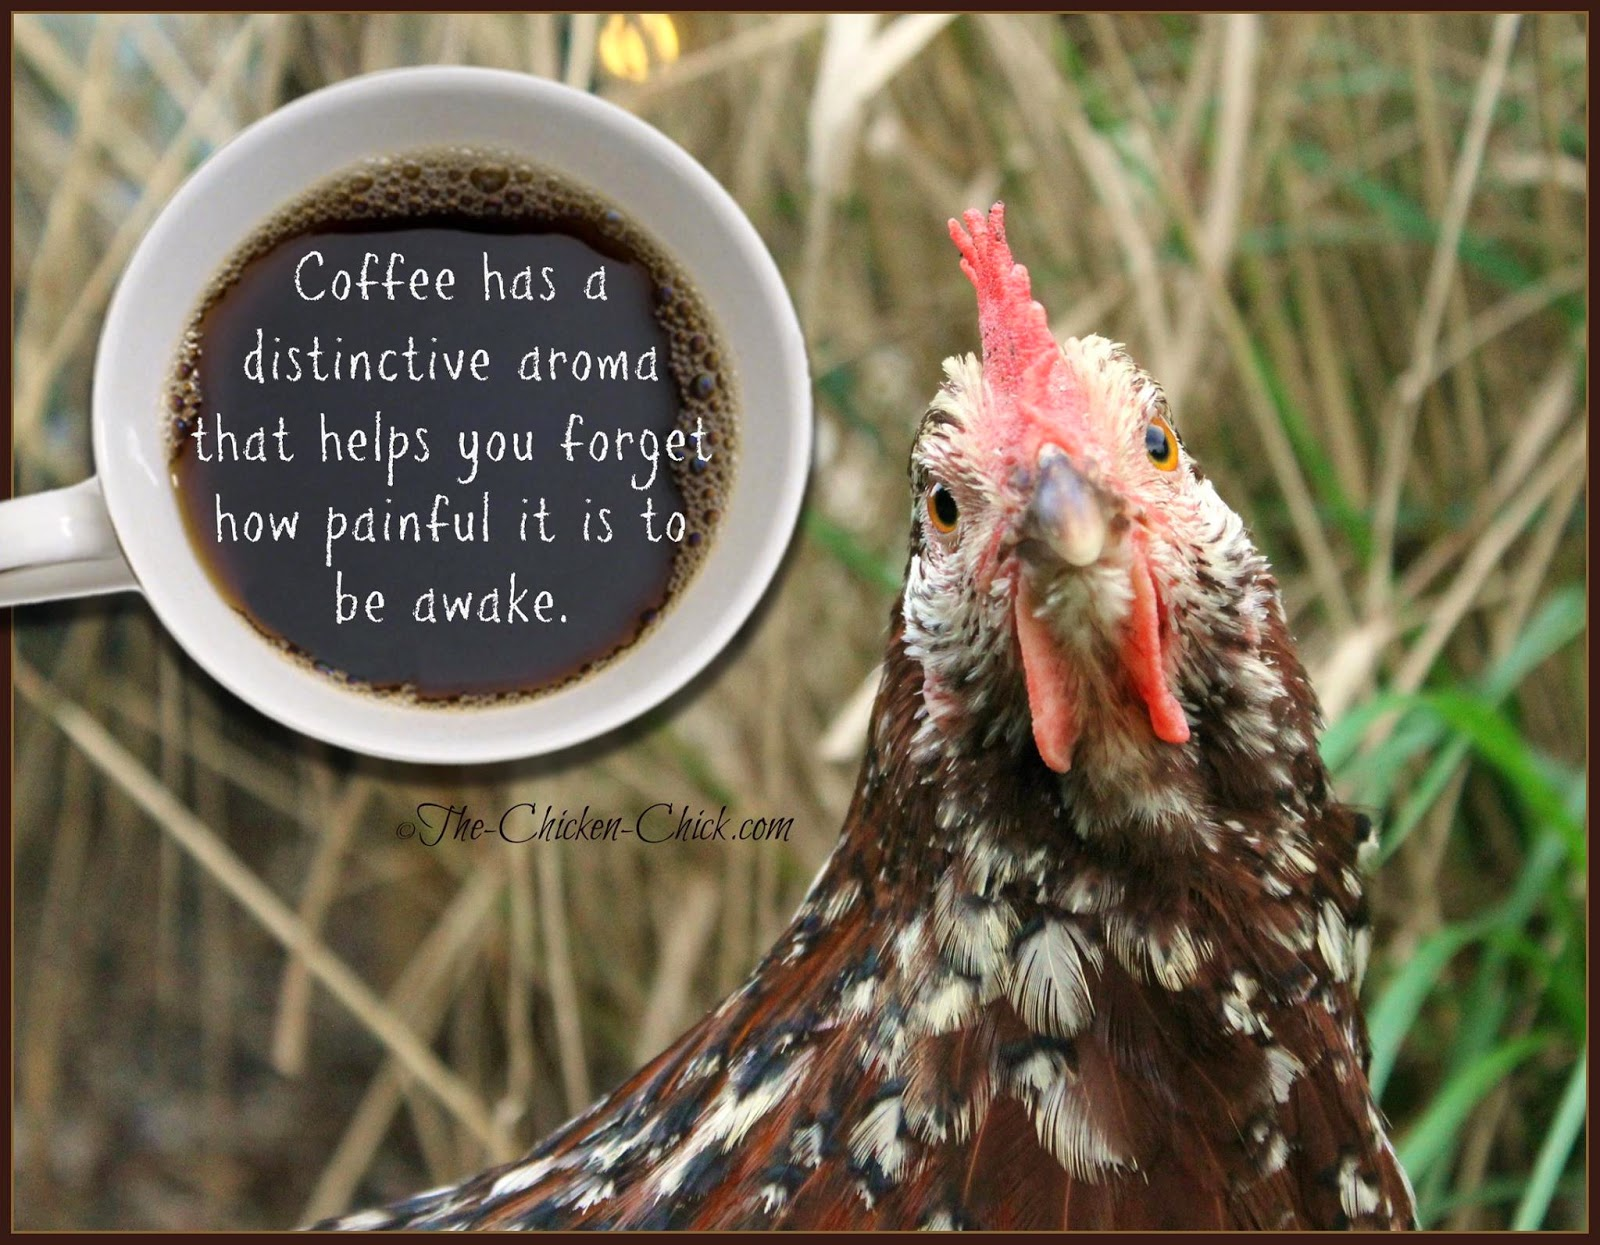 Coffee has a distinctive aroma that helps you forget how painful it is to be awake.